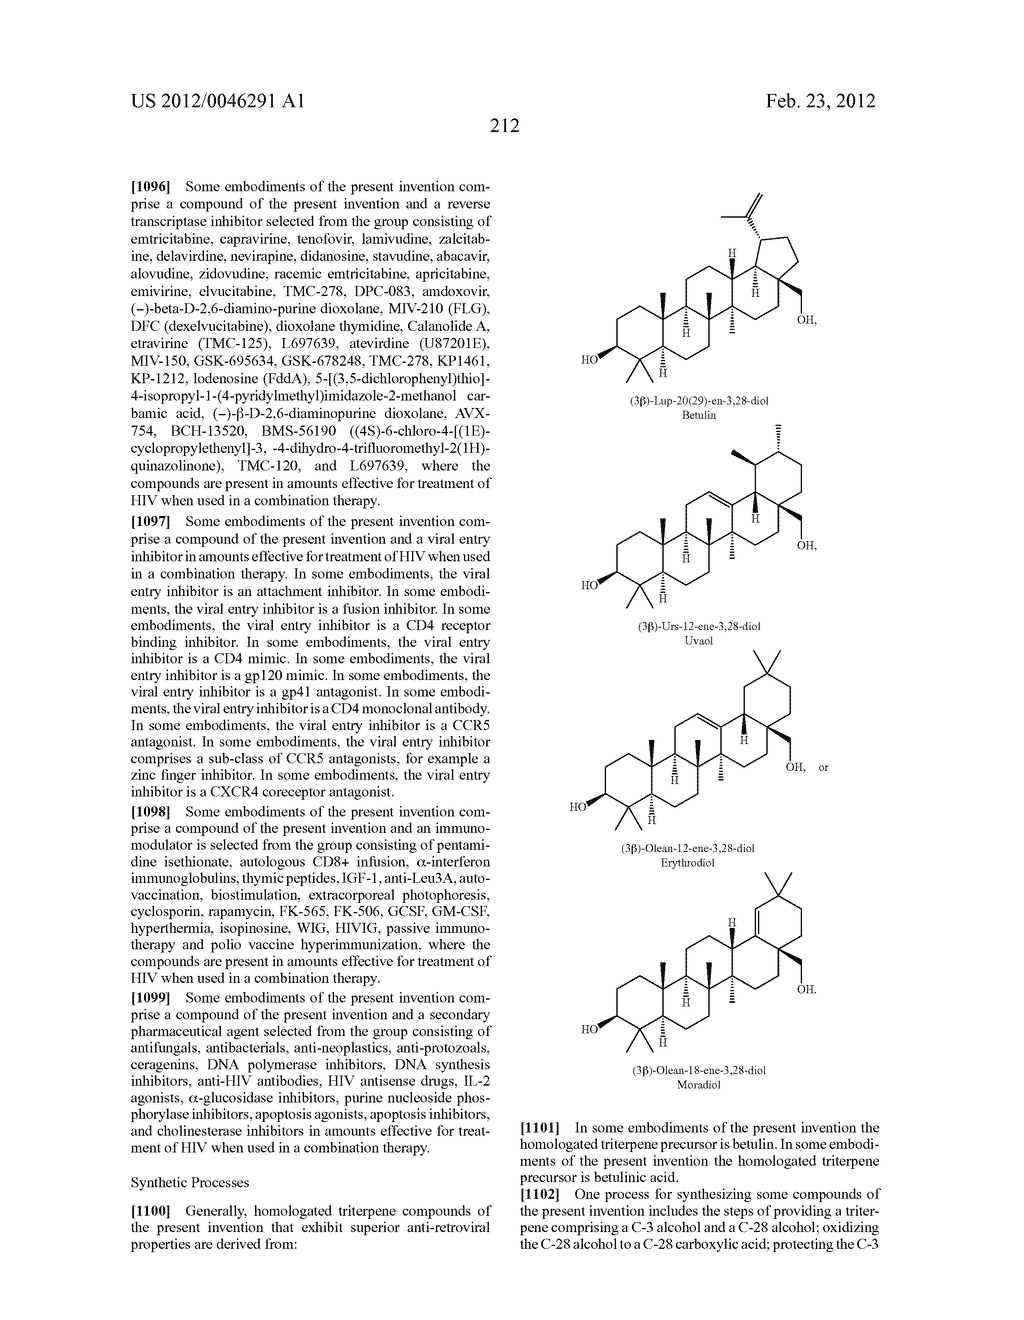 Extended Triterpene Derivatives - diagram, schematic, and image 212